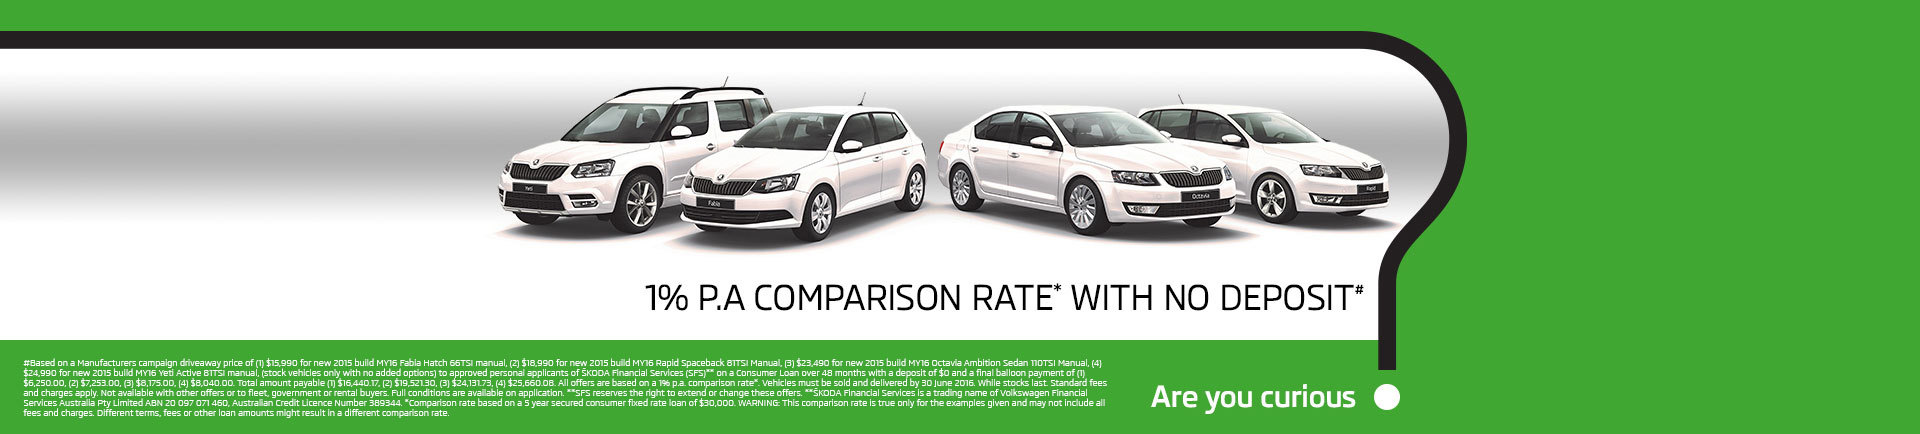 1% P.A. Comparison Rate with no deposit - Are you curious?